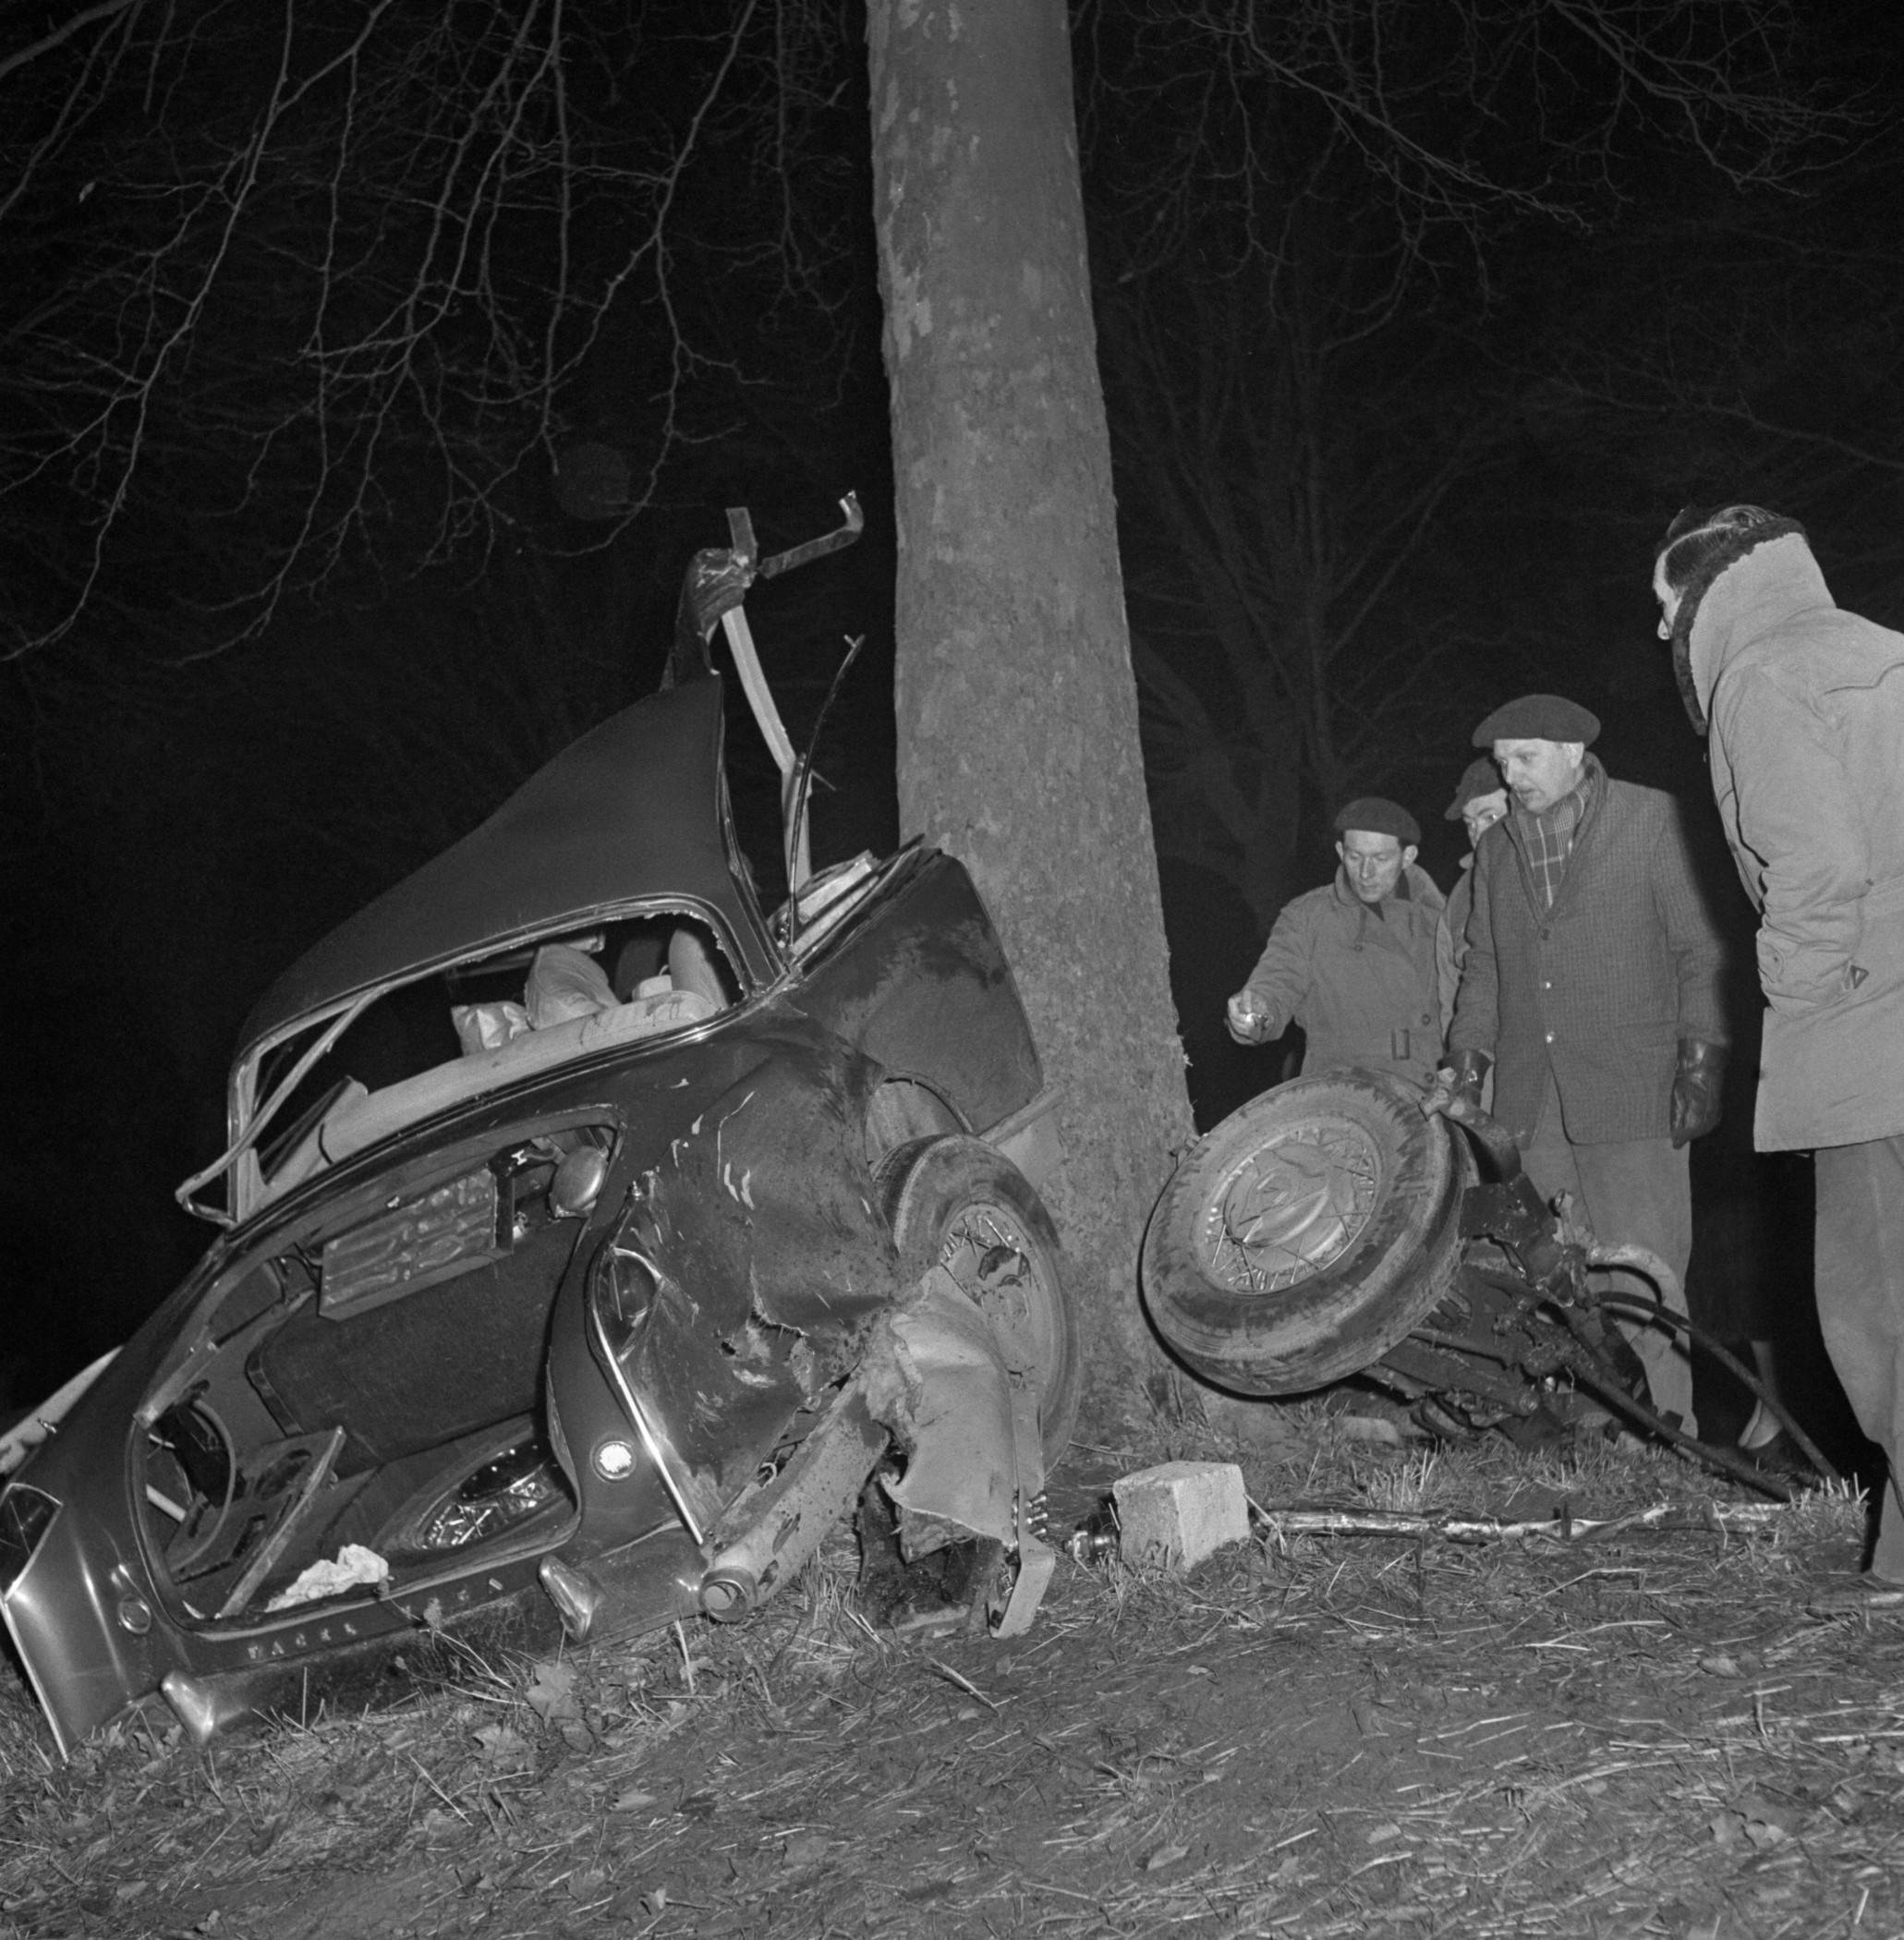 06 Jan 1960 --- Rescuers take a last look at the shattered wreck of the powerful, custom built Facel Vega auto in which famed French author Albert Camus met death near here, east of Paris. The car careened into a tree at about 80 miles an hour after tire blew out. Riding with the Nobel Literature prize winner (1957) were well-known publisher Michel Gallimard and Madame Gallimard. --- Image by © Bettmann/Corbis